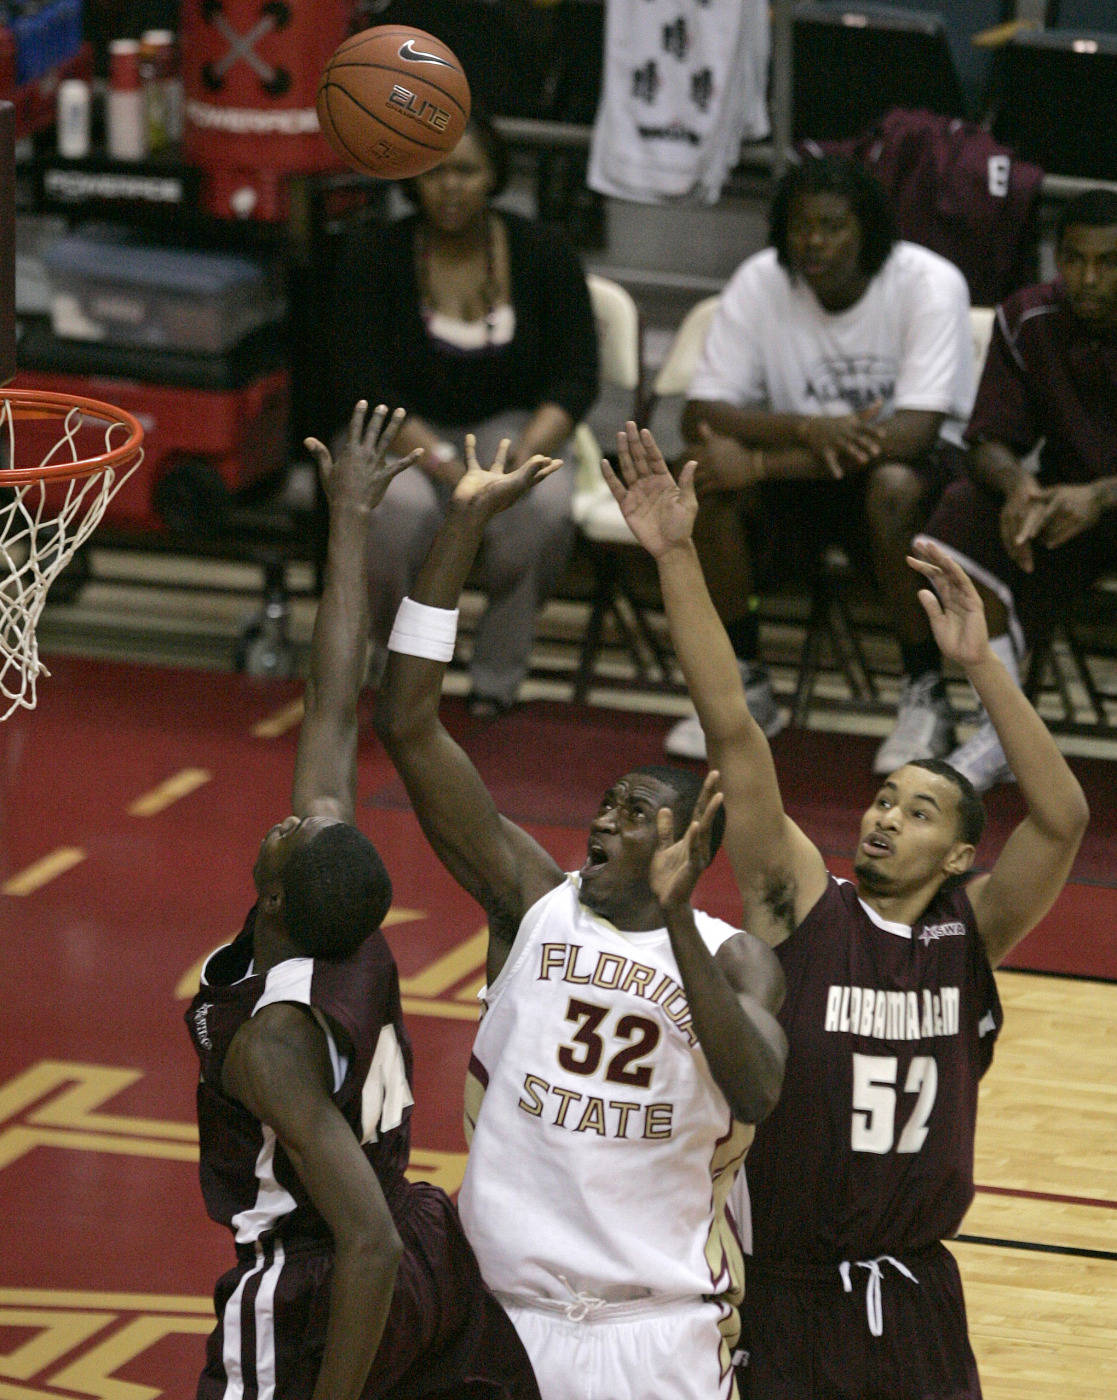 Florida State's Solomon Alabi get a shot off between the defense of Alabama A&M's Bo Amusa, left and Adam Young in the first half of an NCAA college basketball game on Thursday, Dec. 31, 2009, in Tallahassee, Fla. (AP Photo/Steve Cannon)